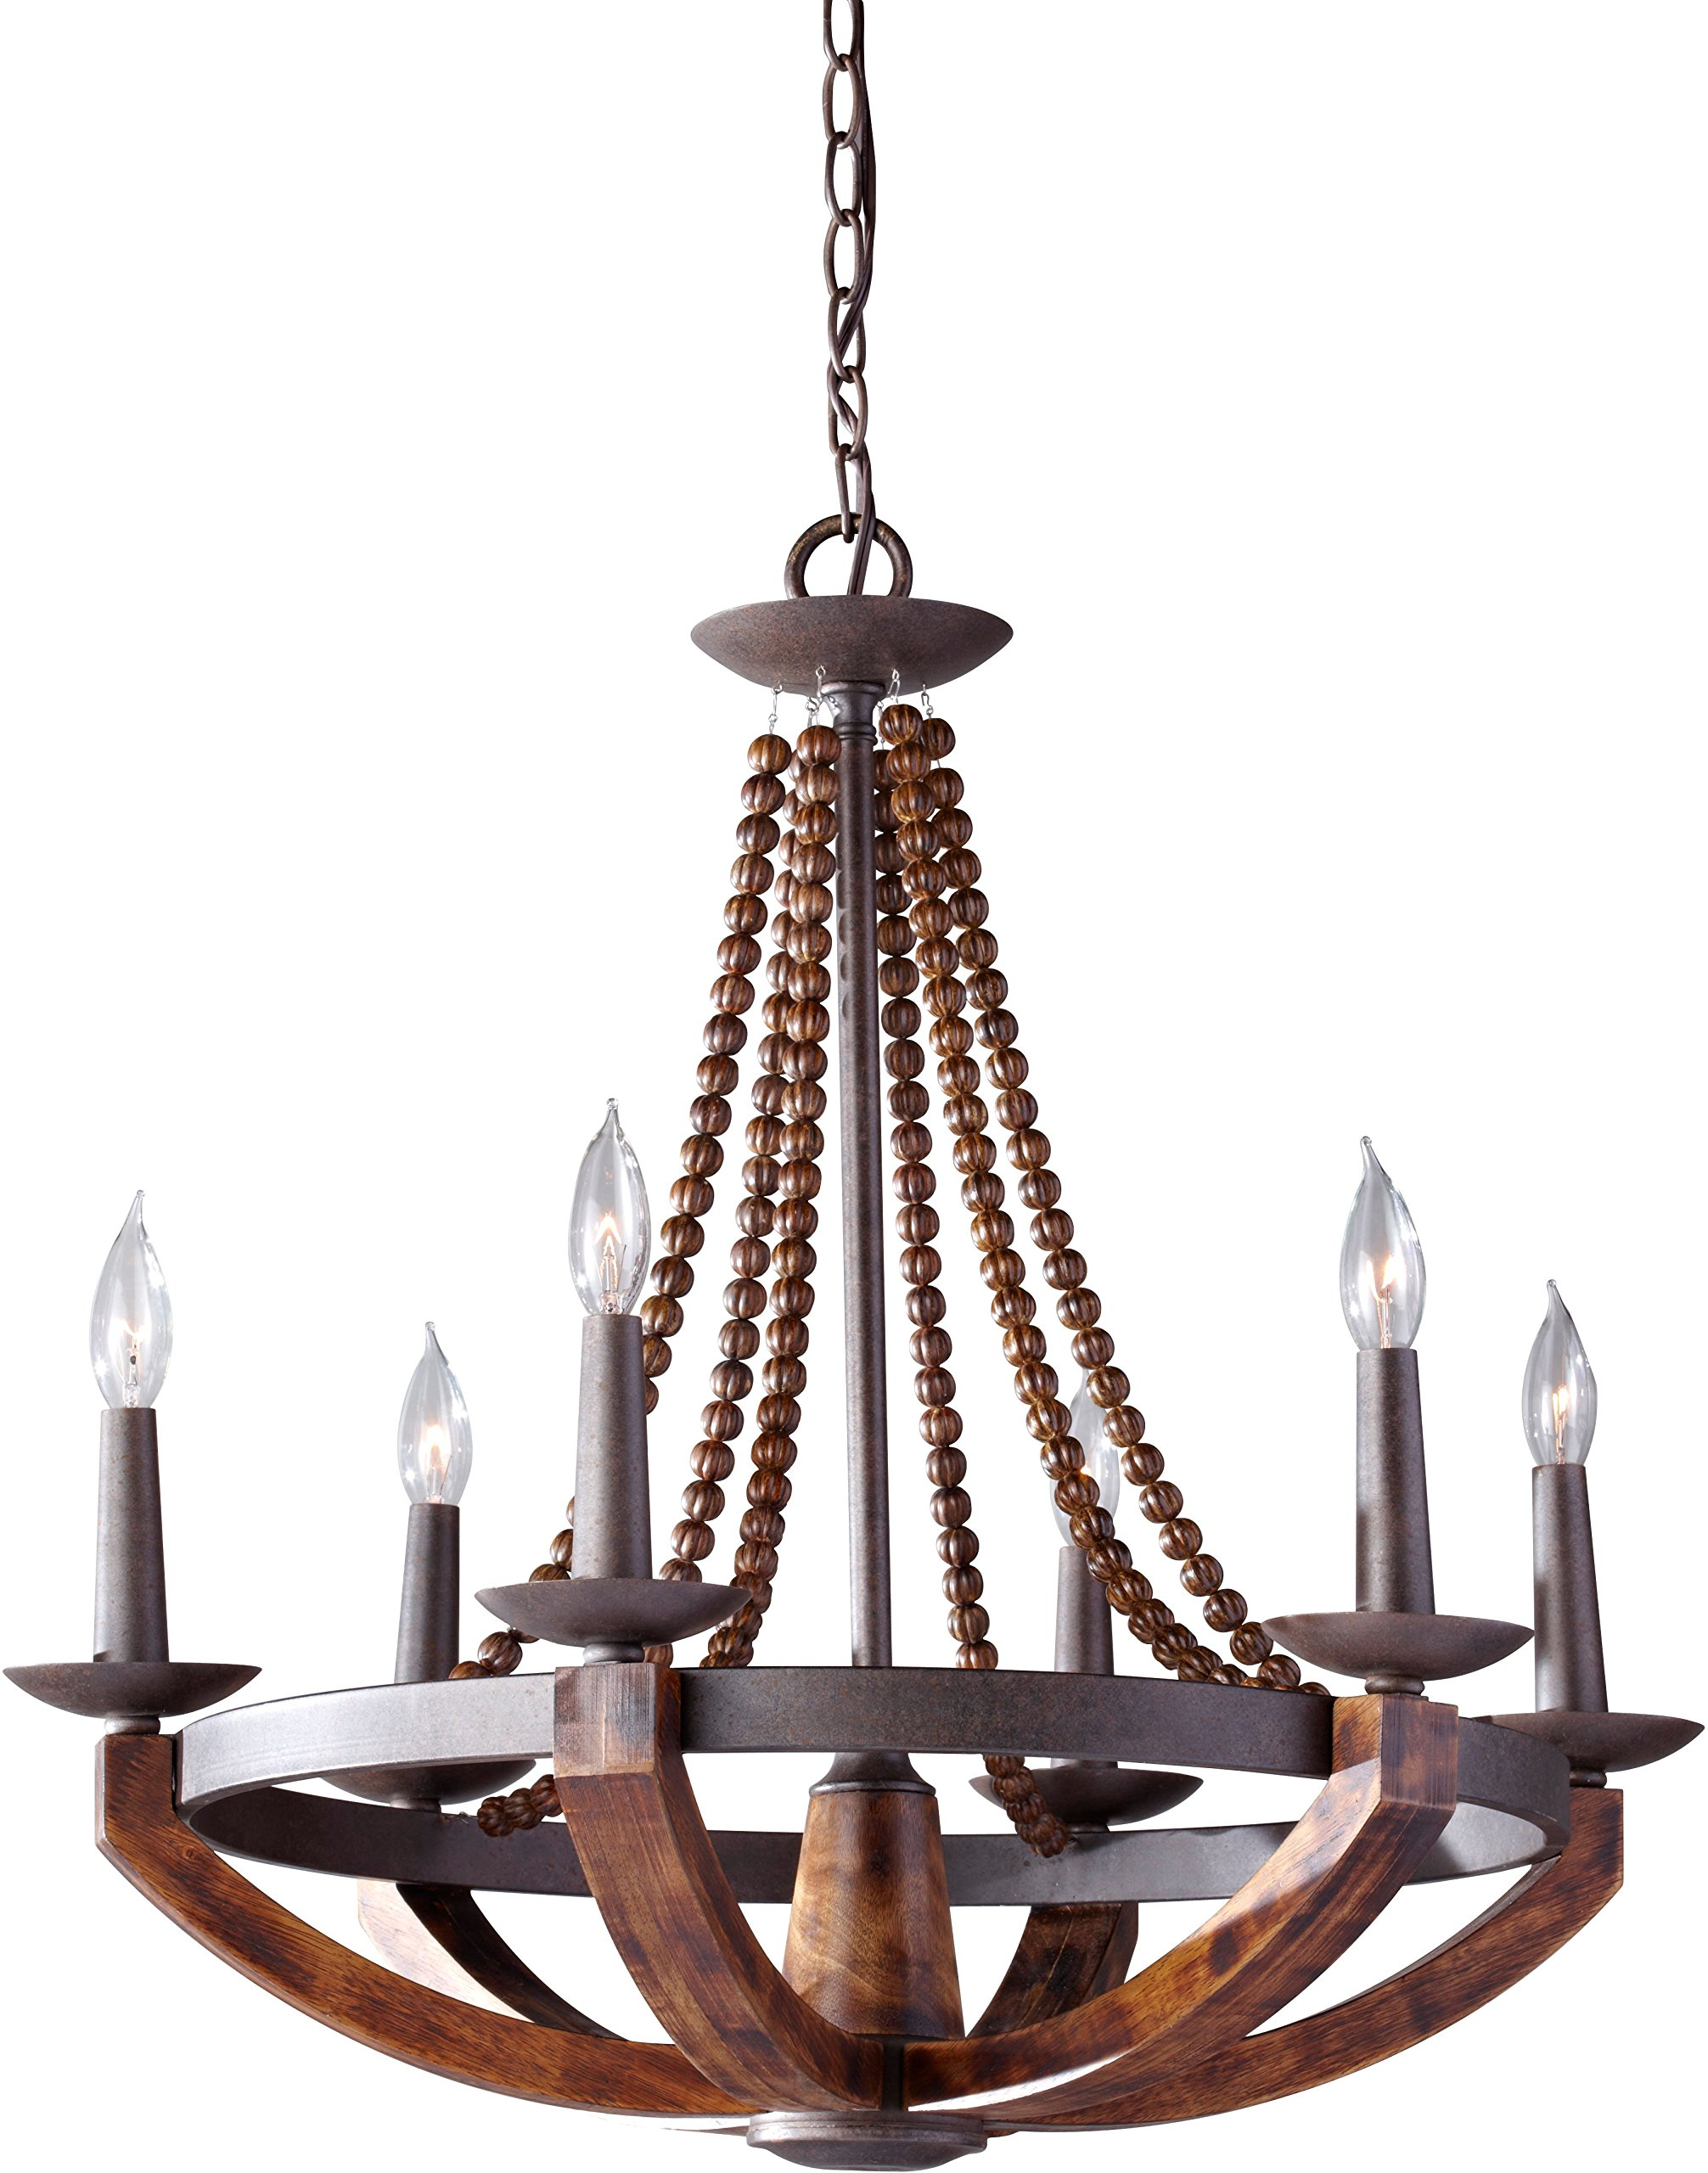 "Feiss F2749/6RI/BWD Adan Candle Chandelier Lighting, Iron, 6-Light (26""Dia x 26""H) 360watts - ADAN CHANDELIER DIMENSIONS: 25.75"" Height x 26.38"" Width (Canopy: 1""H x 5.06""W) Weight 12.54lbs LIGHT: 6-60 Watt Candelabra B-Type Lights, Bulbs Not Included, 360 Total Watts Included Chain: (1) 60"" in Rustic Iron Finish, Wire: 180"" Brown Wire - kitchen-dining-room-decor, kitchen-dining-room, chandeliers-lighting - 81WL5ulbtPL -"